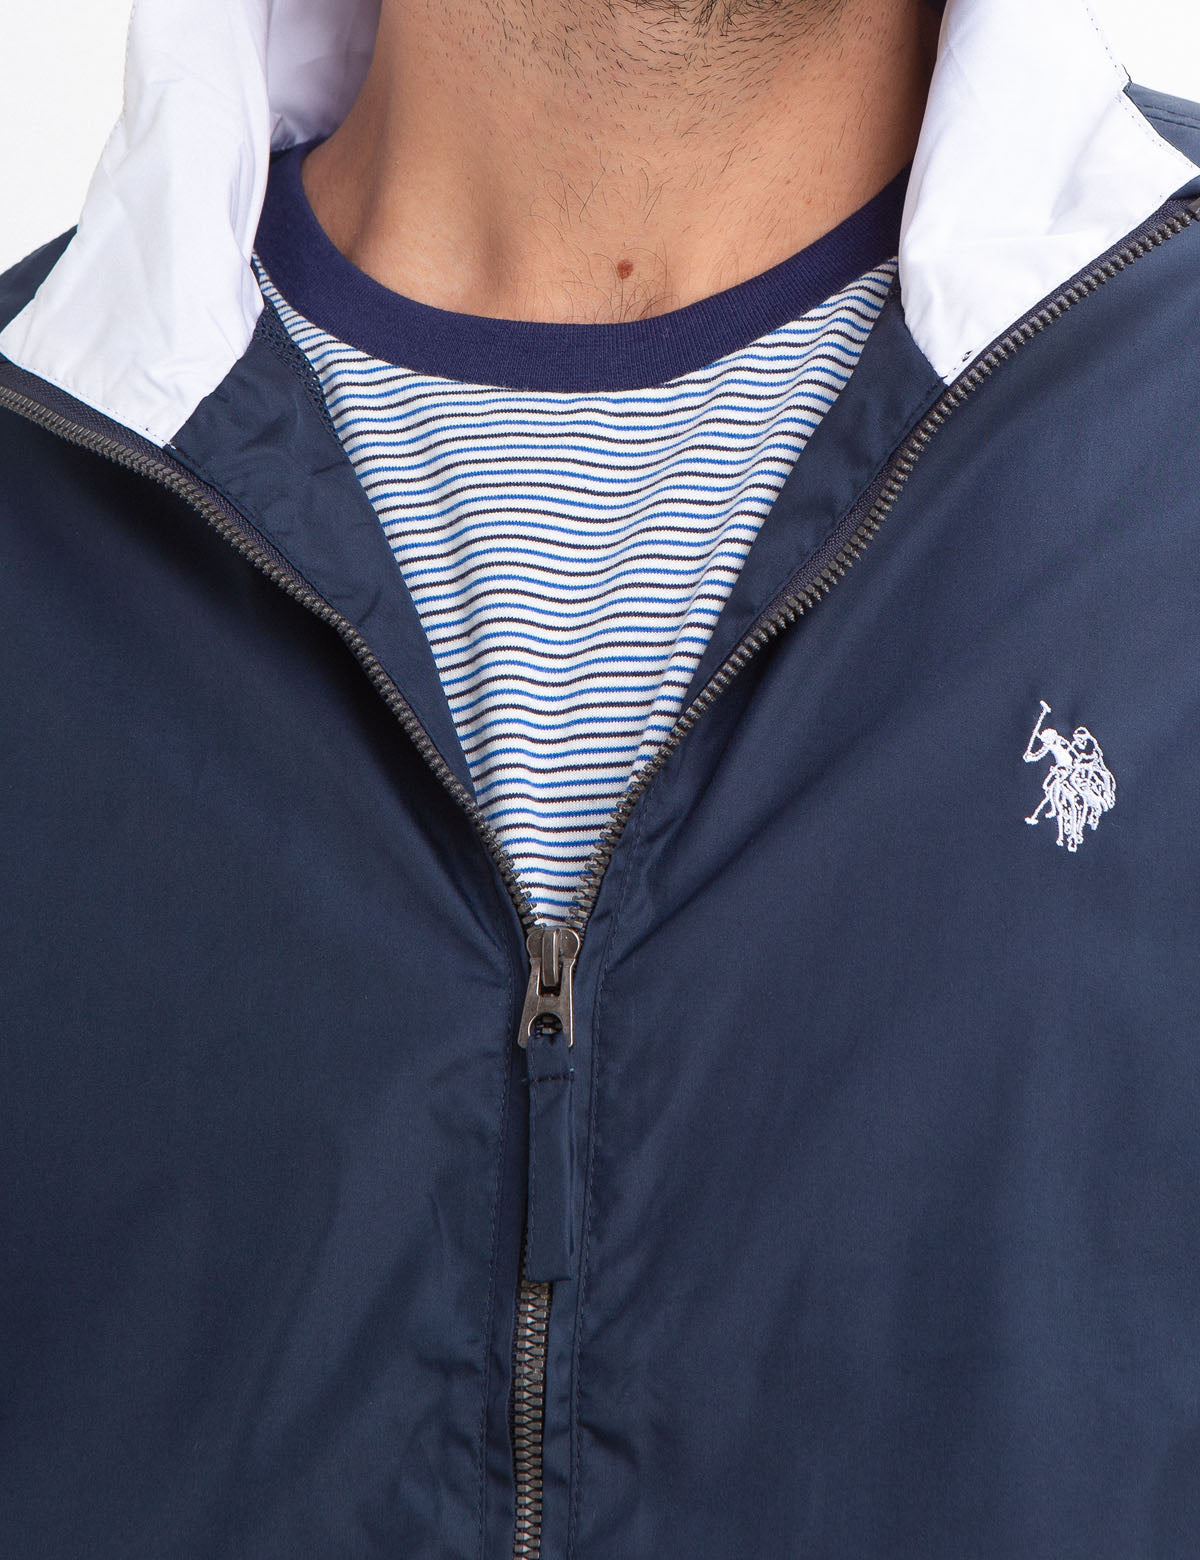 MESH LINED WINDBREAKER - U.S. Polo Assn.